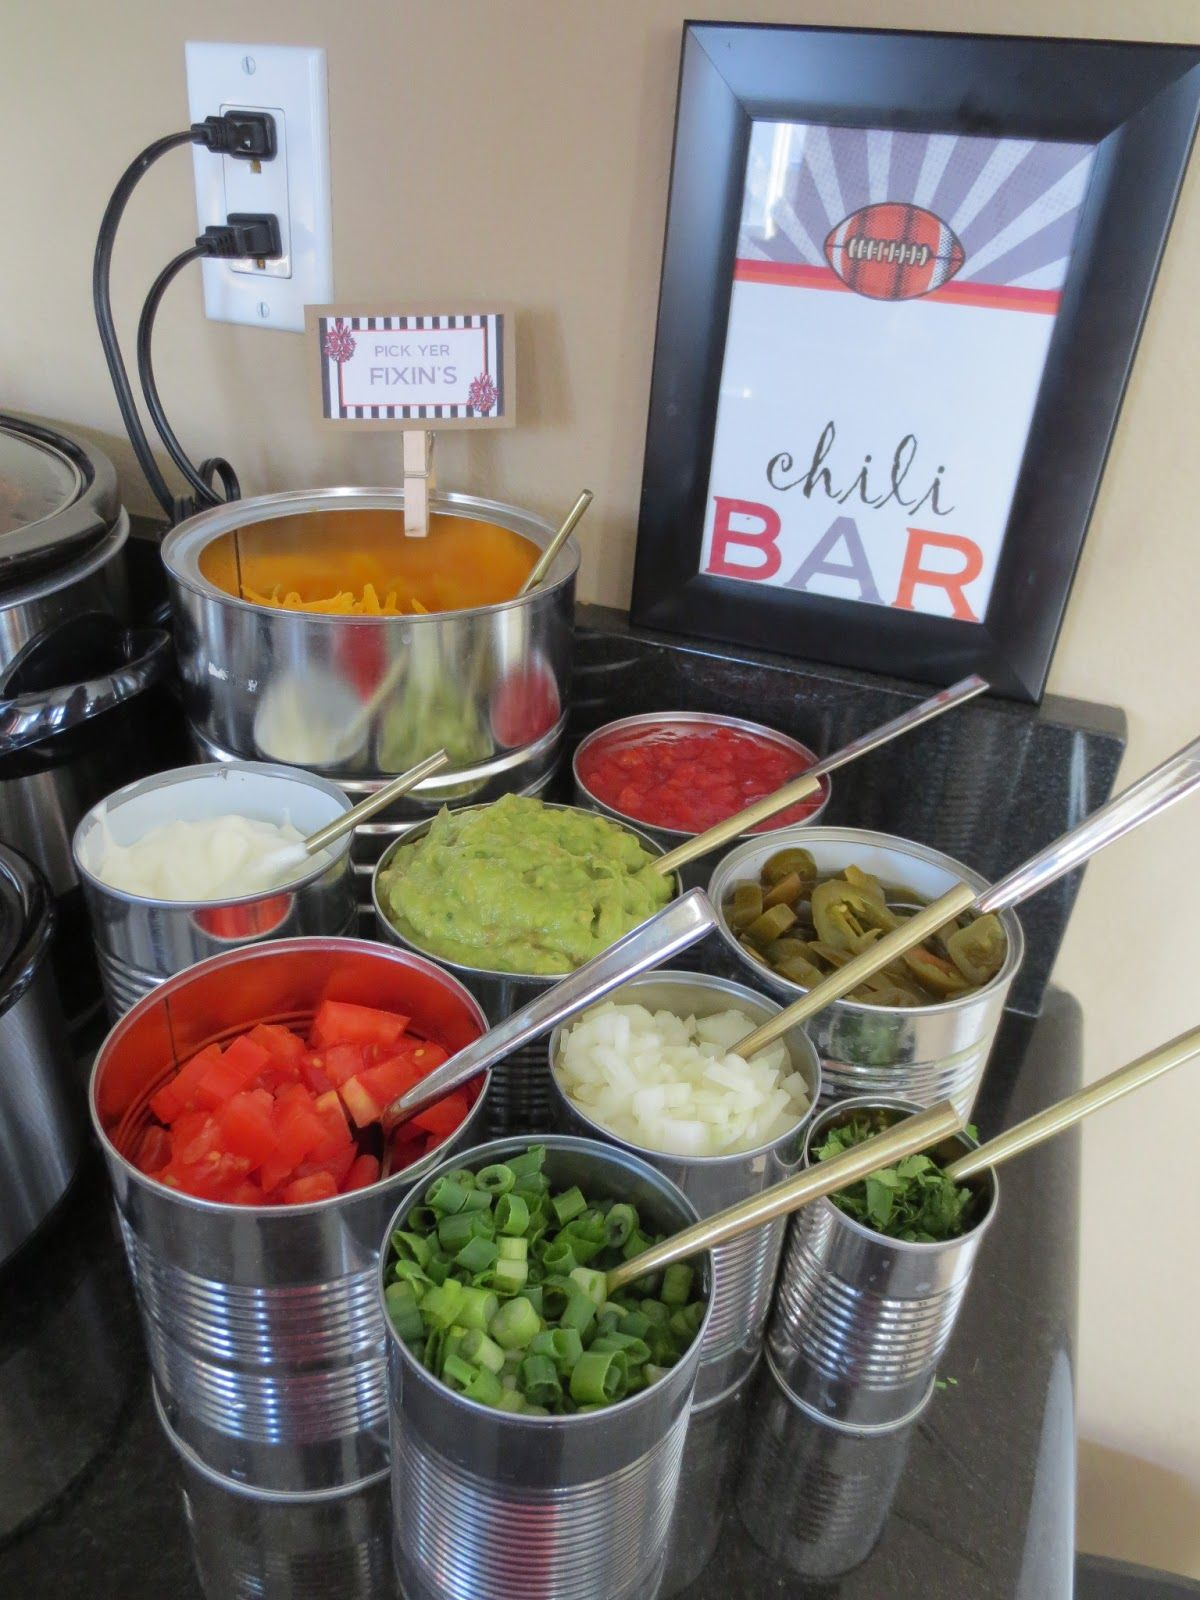 Ordinary Chili Dinner Party Menu Ideas Part - 9: Food · Chili Bar!